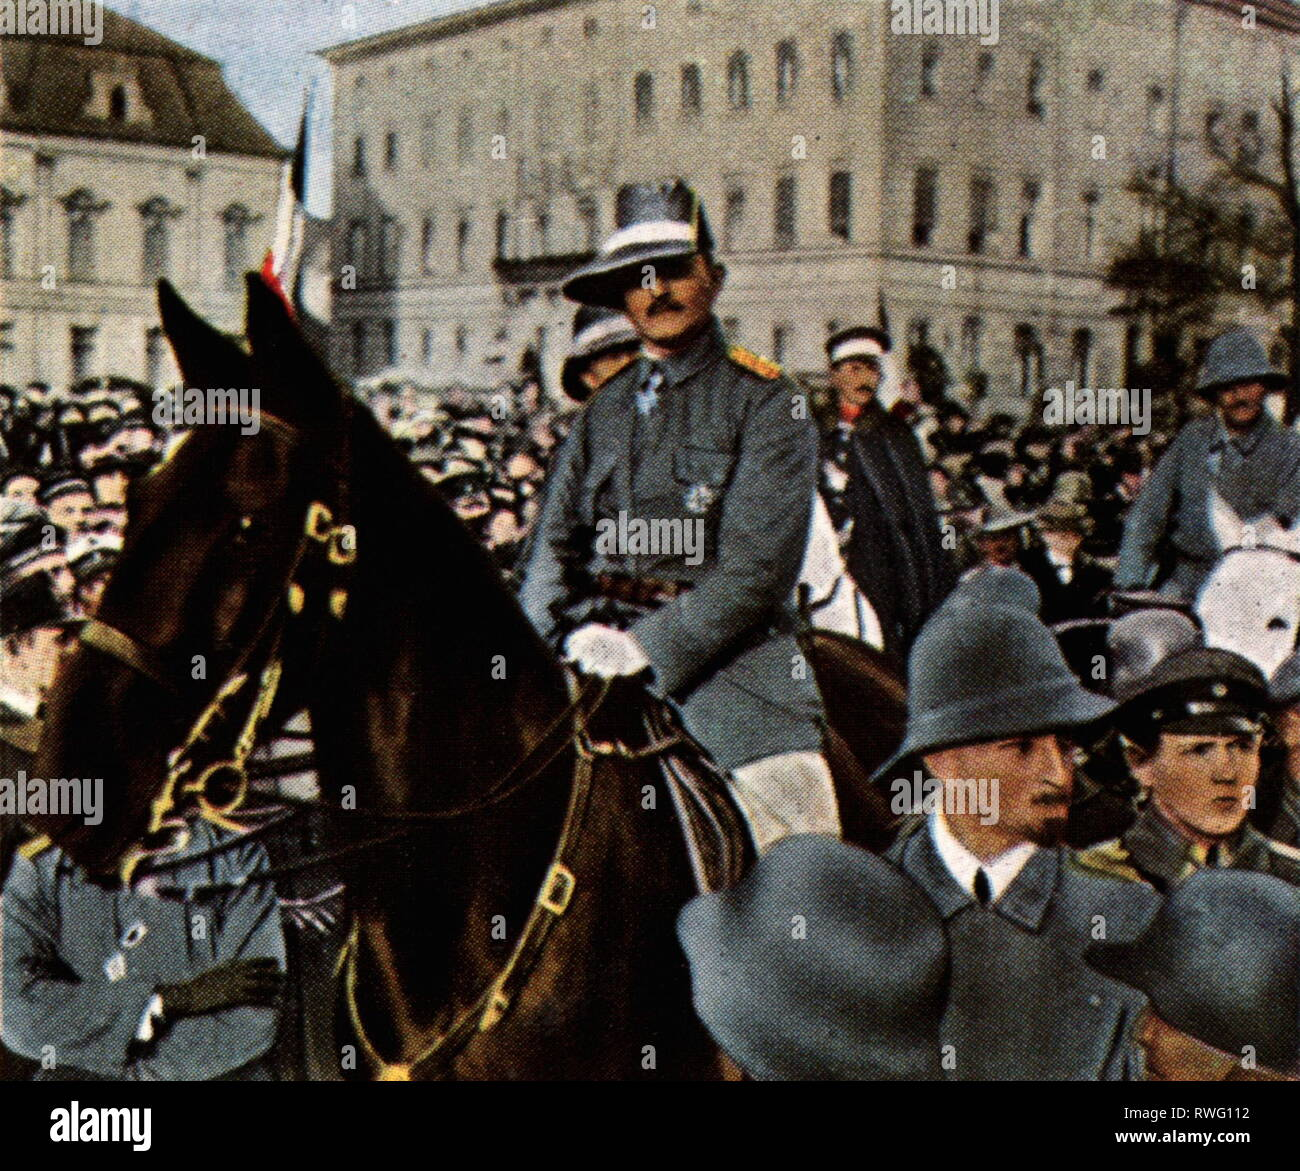 Lettow-Vorbeck, Paul von, 20.3.1870 - 9.3.1964, German general, half length, returning with the remainder of the Schutztruppe (German colonial force) from East Africa, Berlin, 2.3.1919, coloured photograph, cigarette card, series 'Die Nachkriegszeit', 1935, Additional-Rights-Clearance-Info-Not-Available - Stock Image